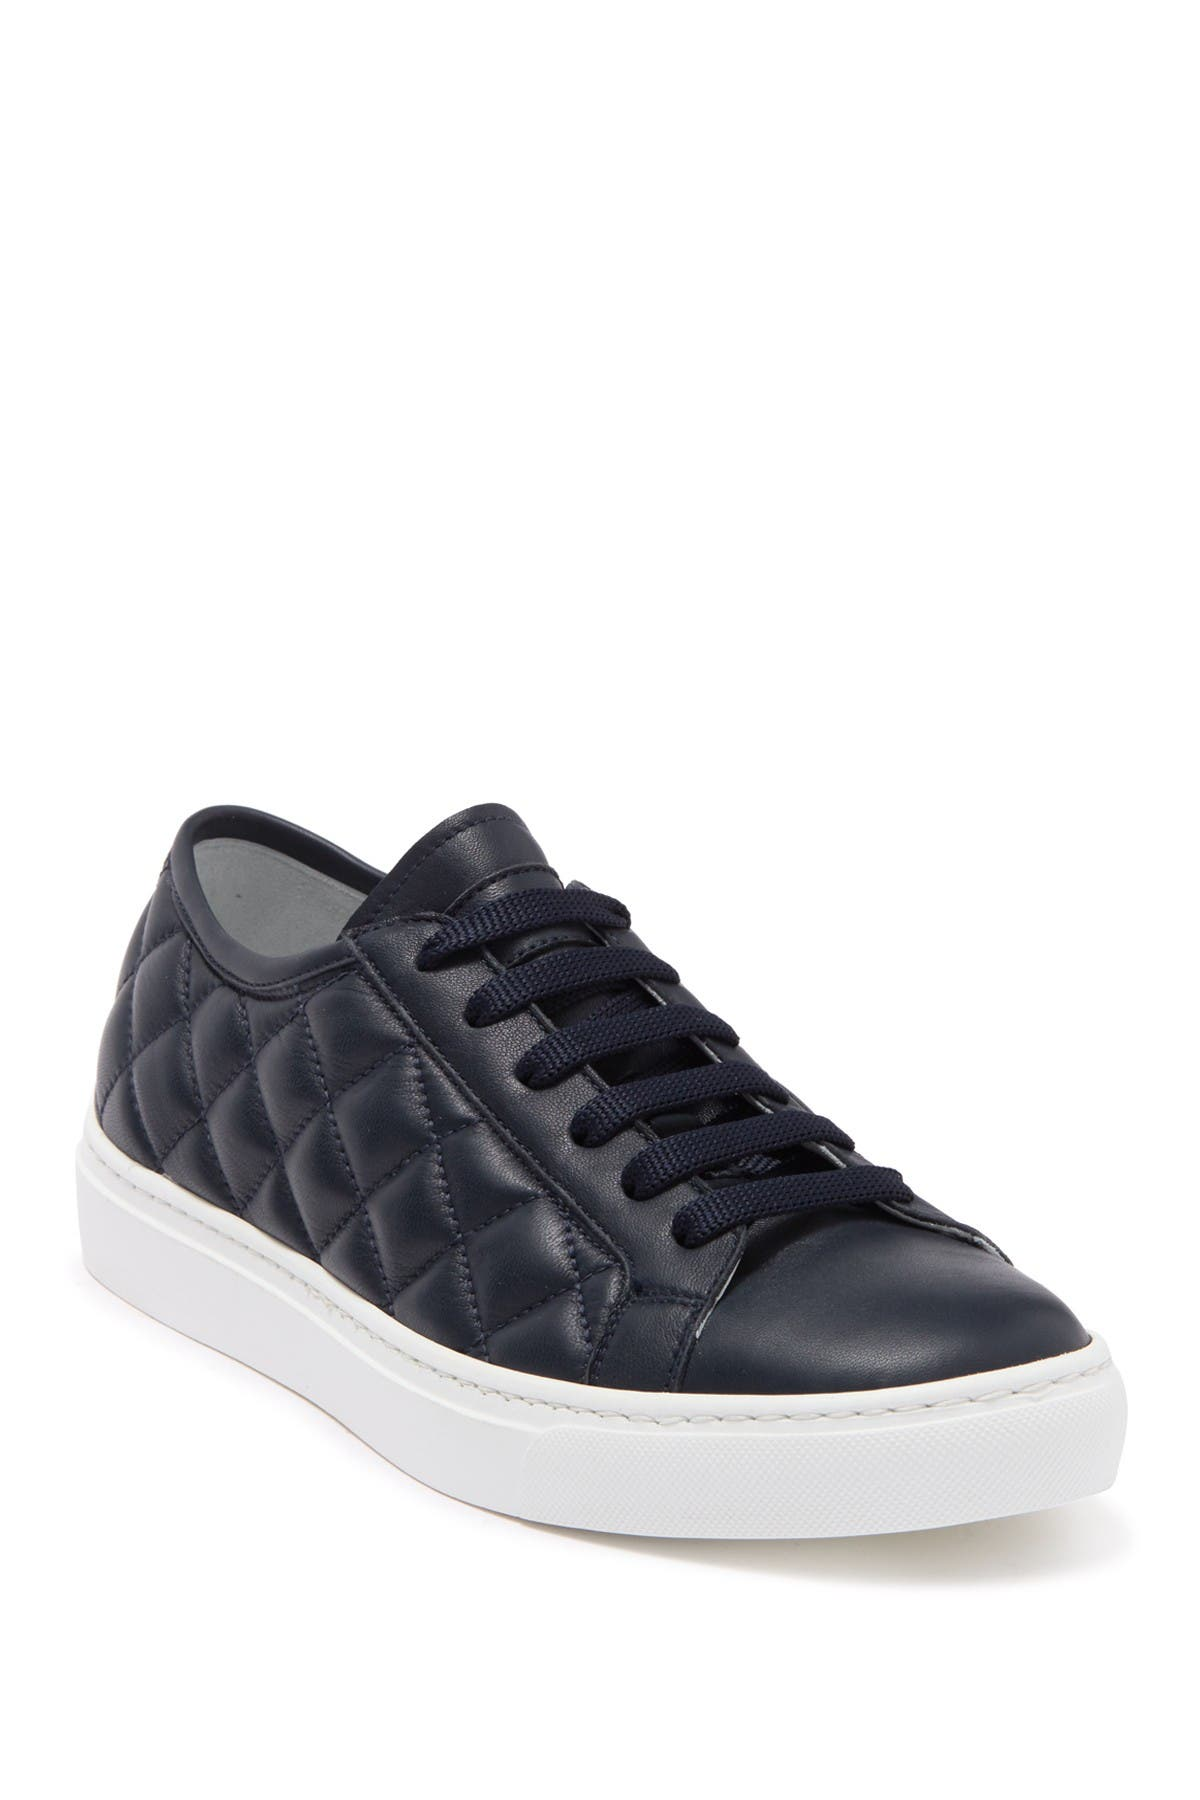 Image of To Boot New York Amelia Quilted Sneaker